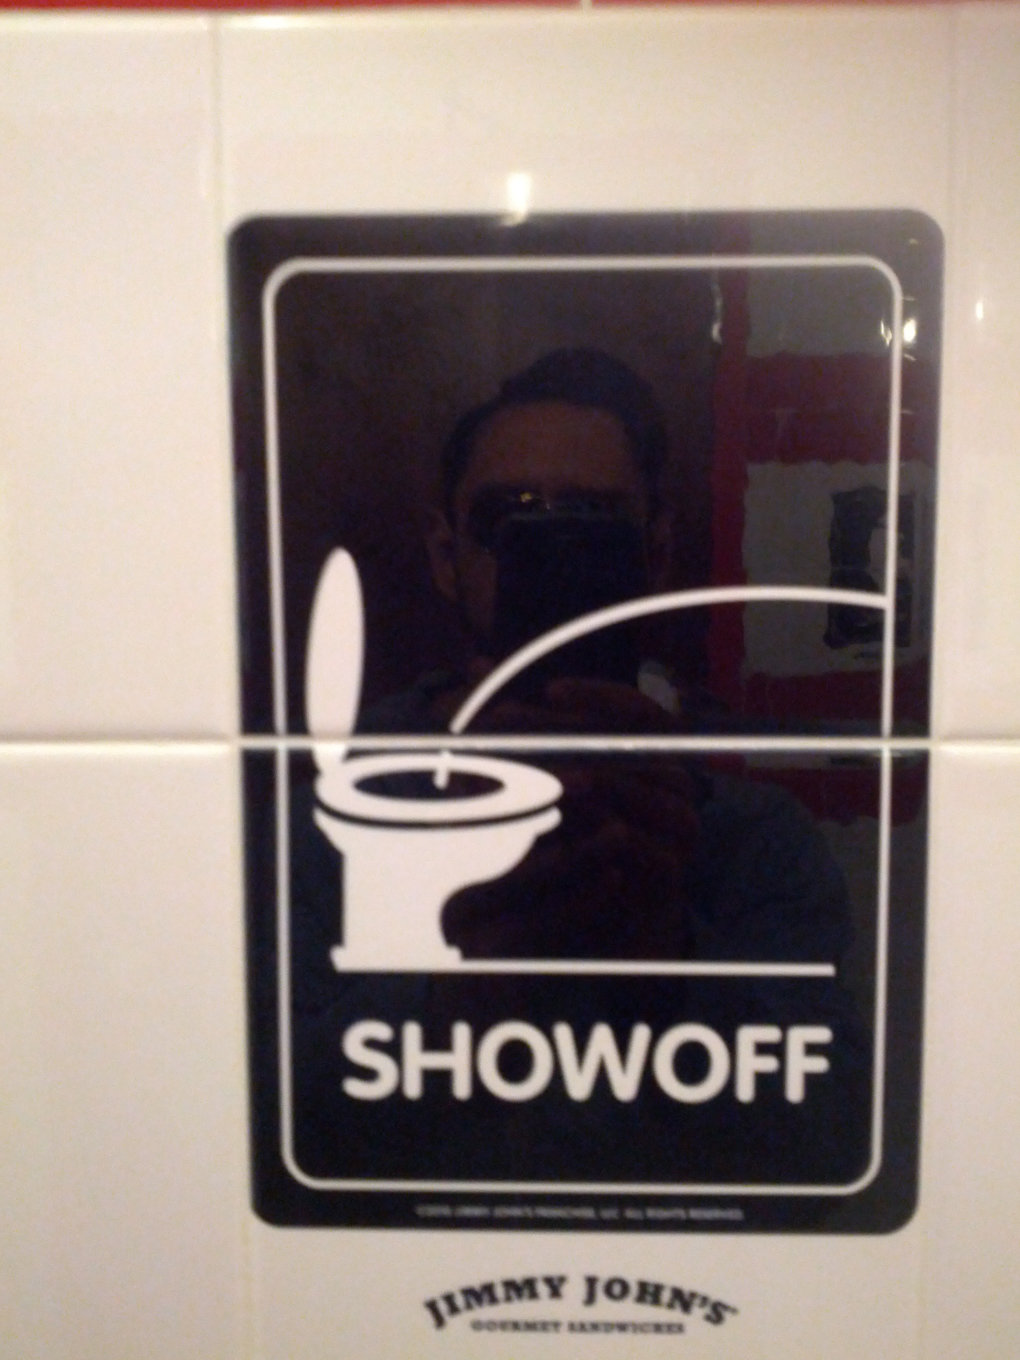 qajeydt - which type of restroom user are you?